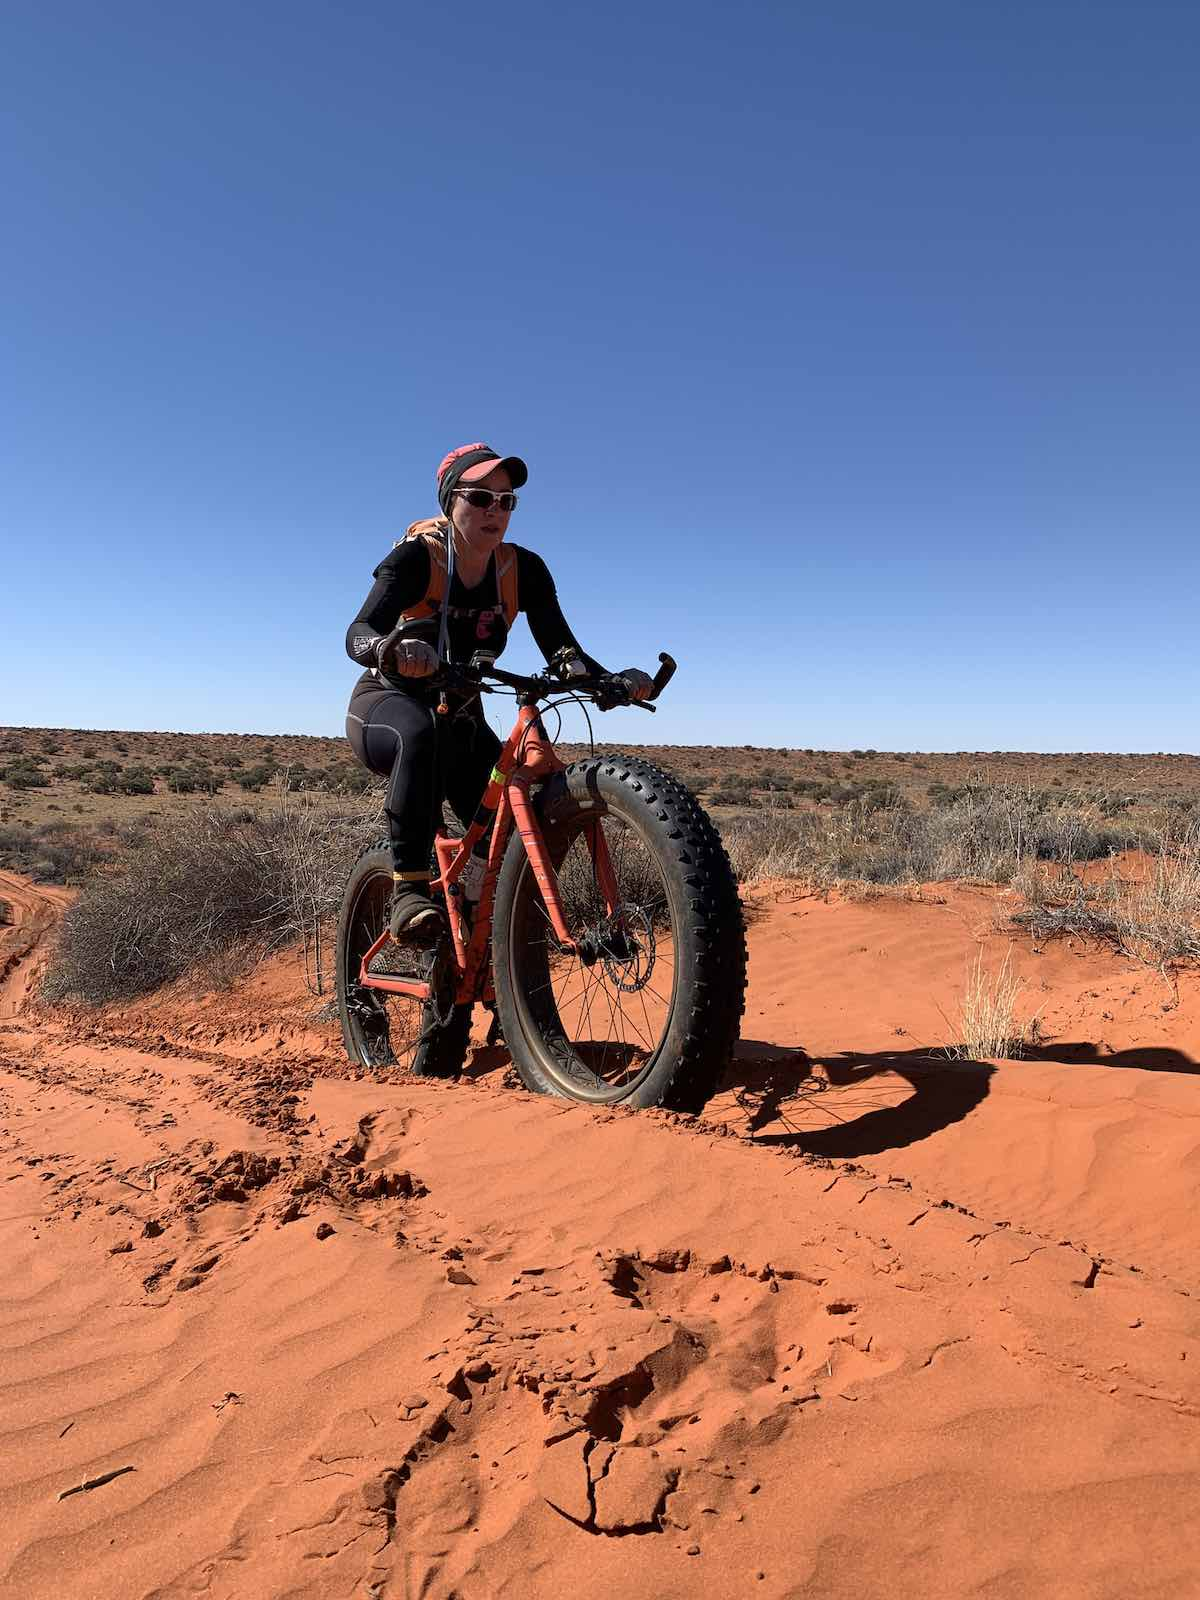 bikerumor pic of the day a cyclist rides a fat tire bicycle on red desert sand, the sky is clear and dark blue, there is brush growing in the flat distance.